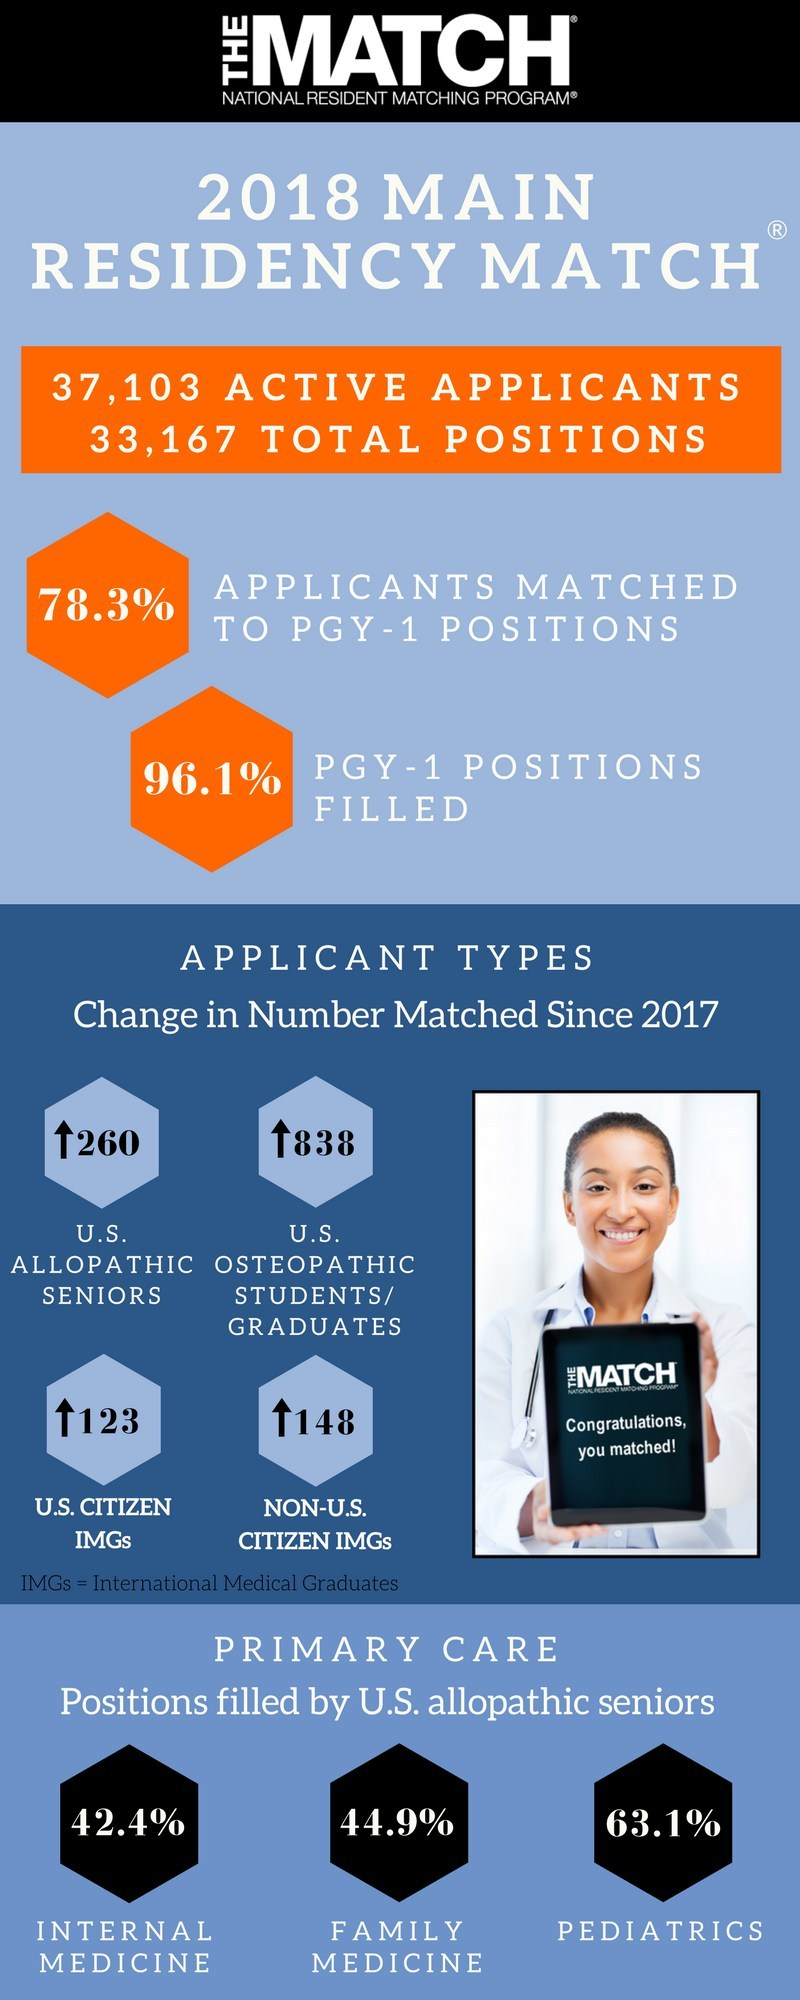 2018 Main Residency Match Results